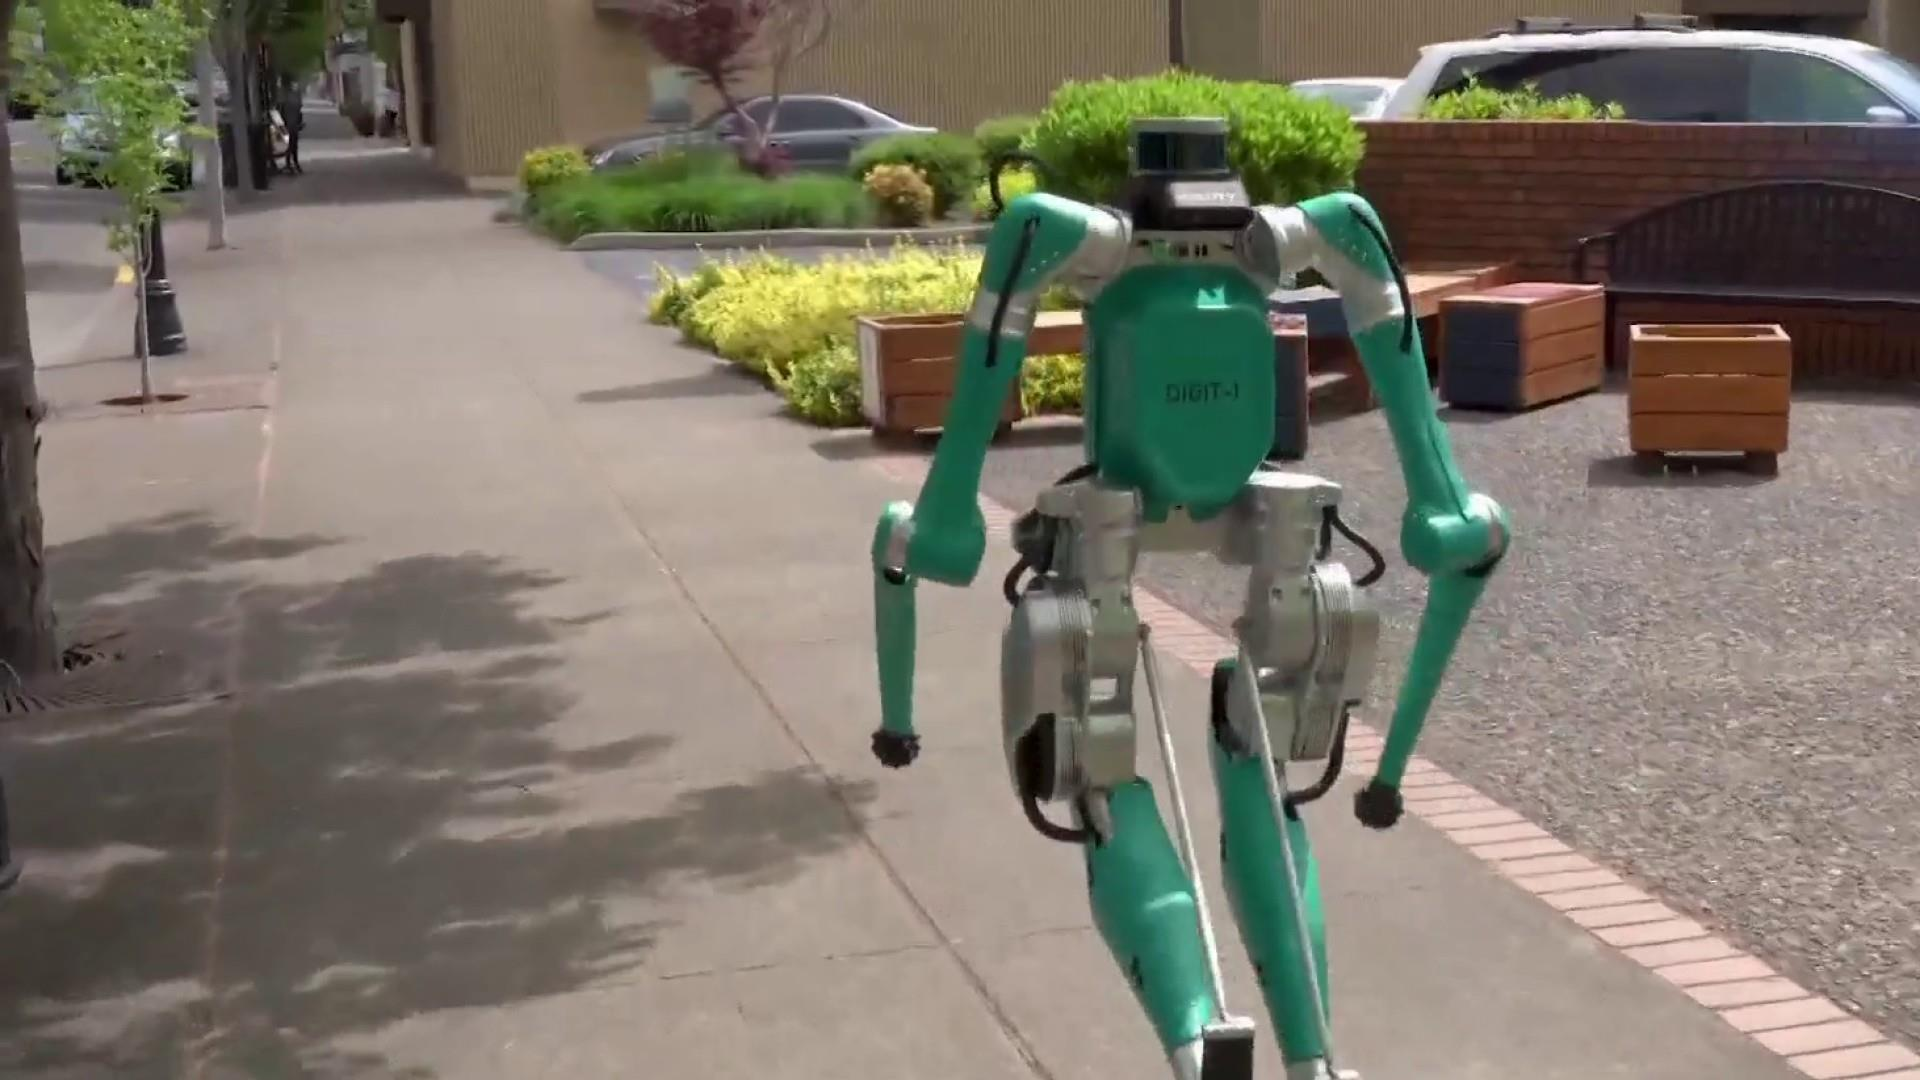 Is this package-carrying robot the future of home deliveries?